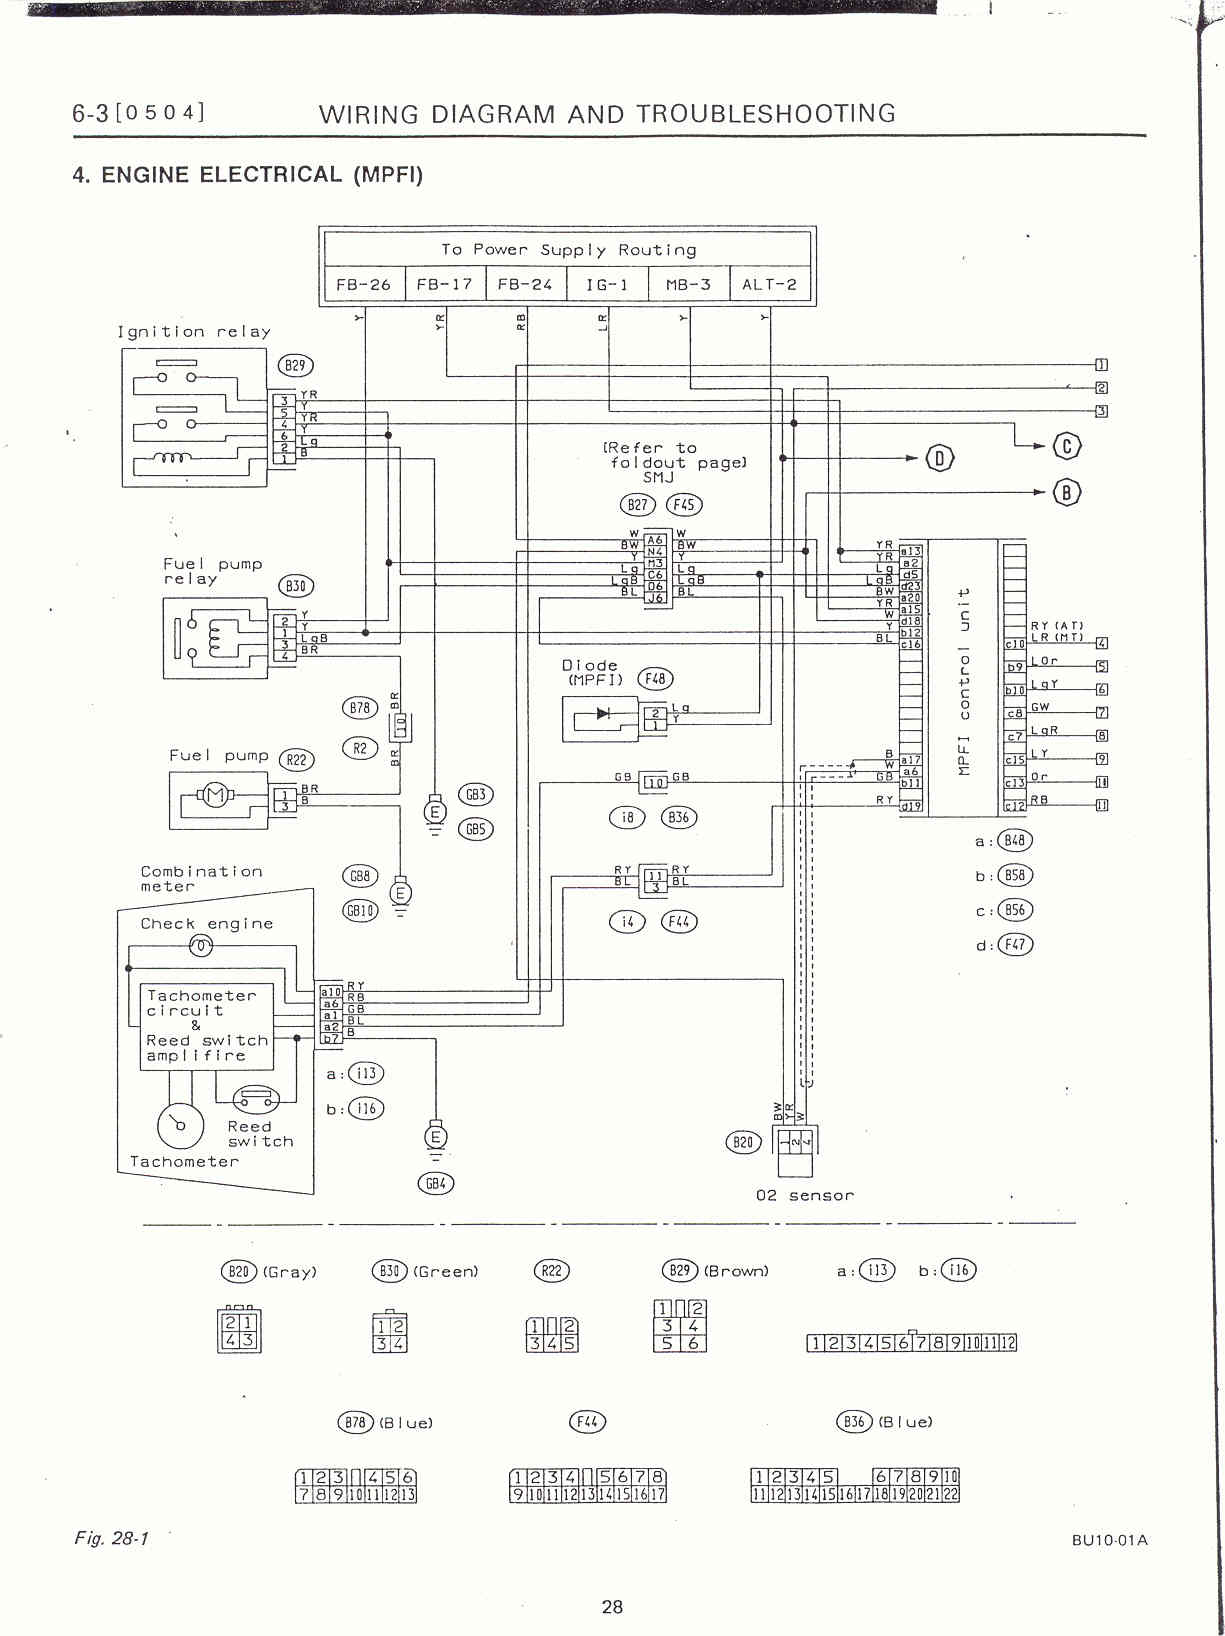 93 subaru wiring diagram 93 wiring diagrams 6 3 engine electrical1 subaru wiring diagram 6 3 engine electrical1